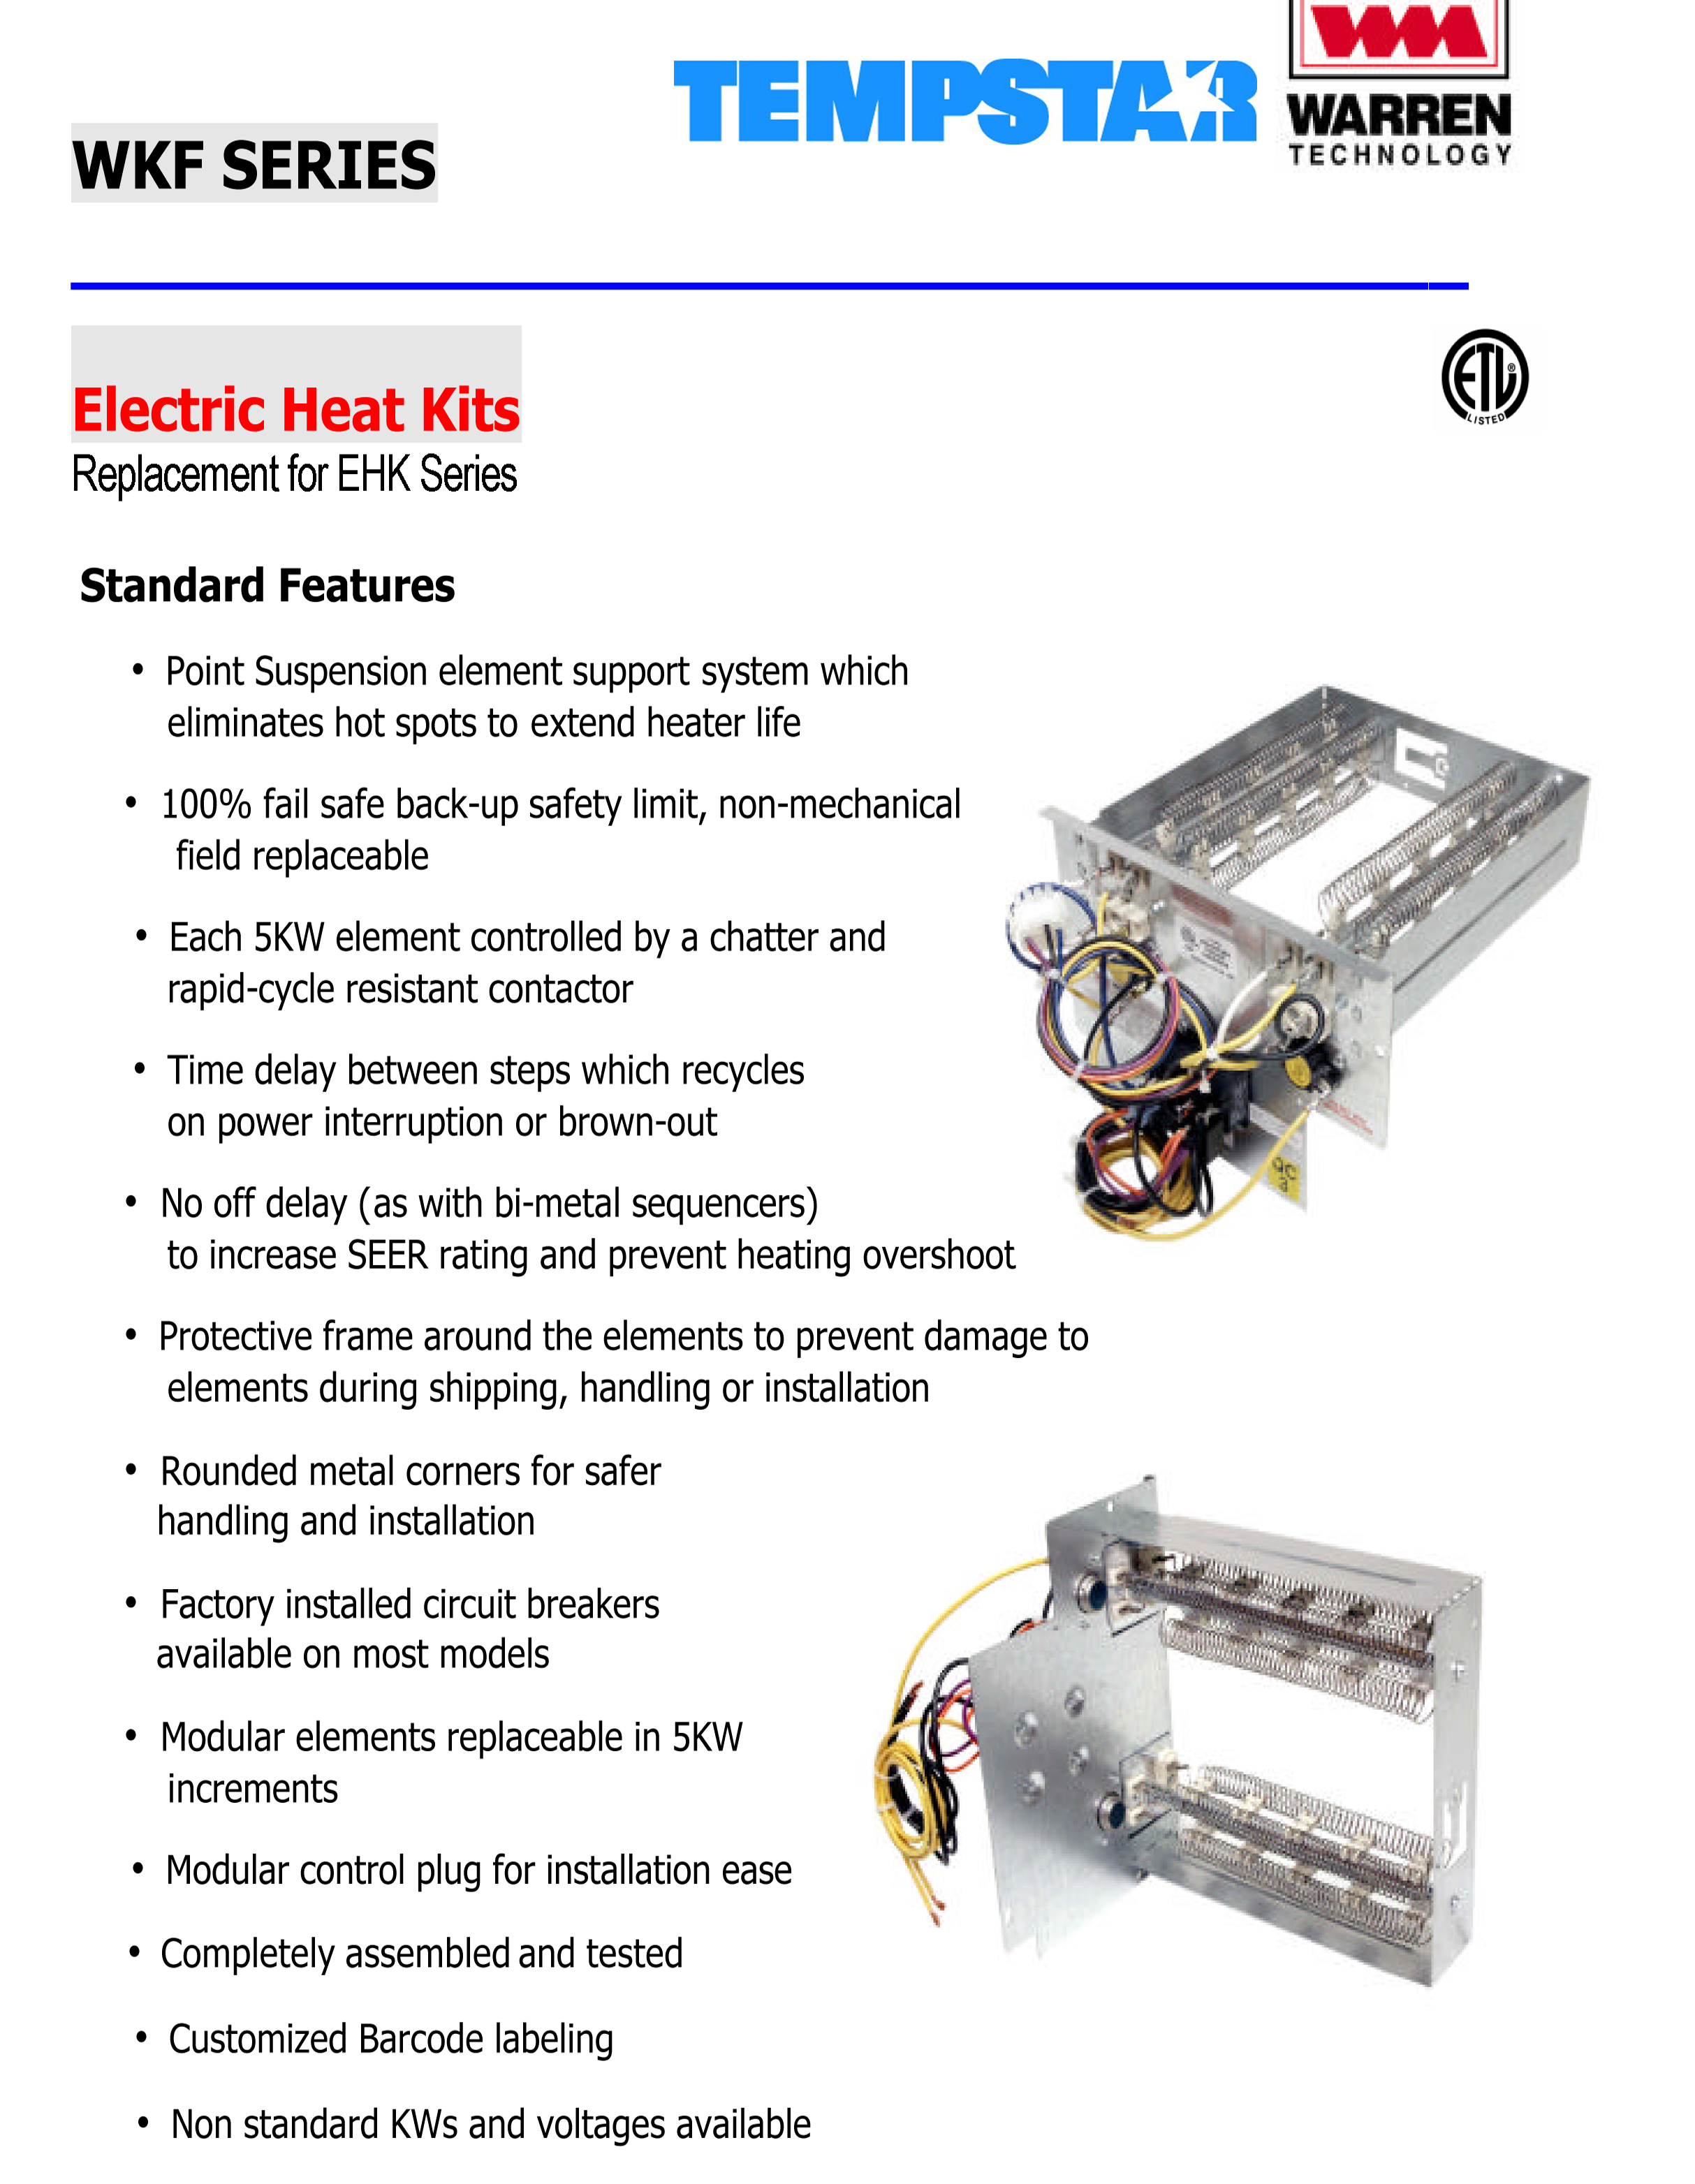 tempstar wkf brochure air handling unit with electric heater grihon com ac, coolers heat strip wiring diagram at readyjetset.co